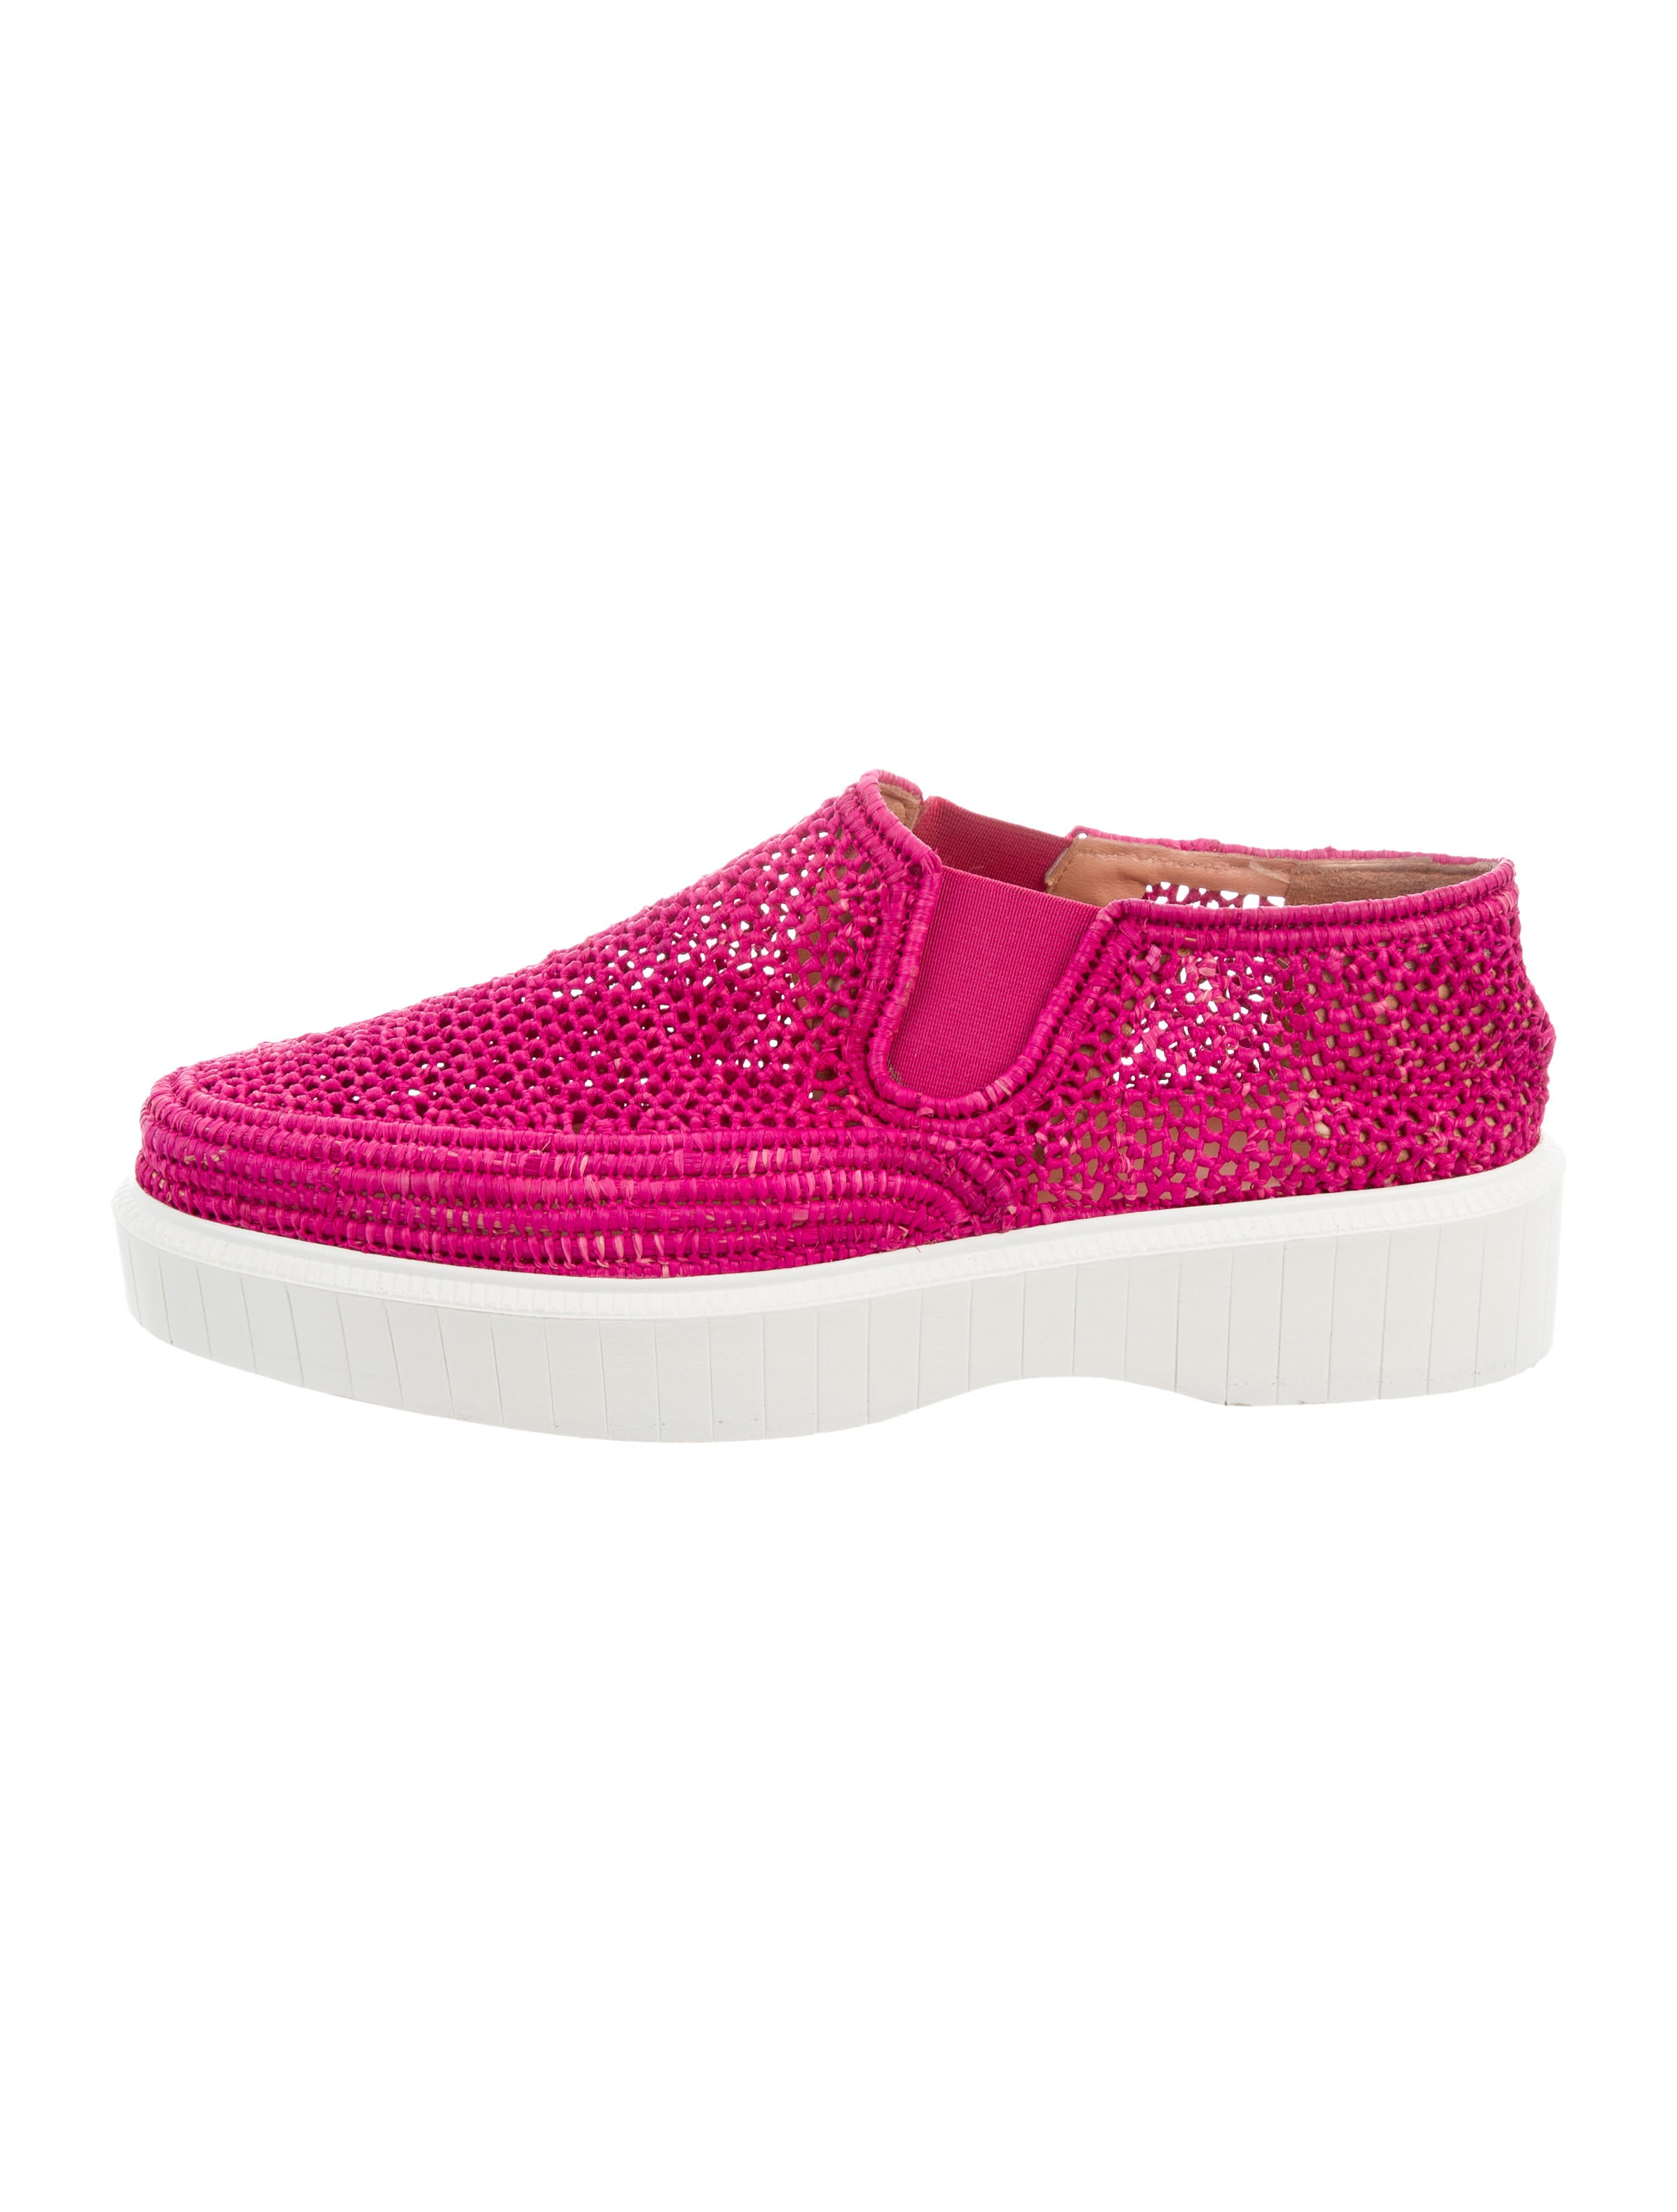 Robert Clergerie Platform Slip-On Sneakers - Shoes - ROG27112 | The RealReal